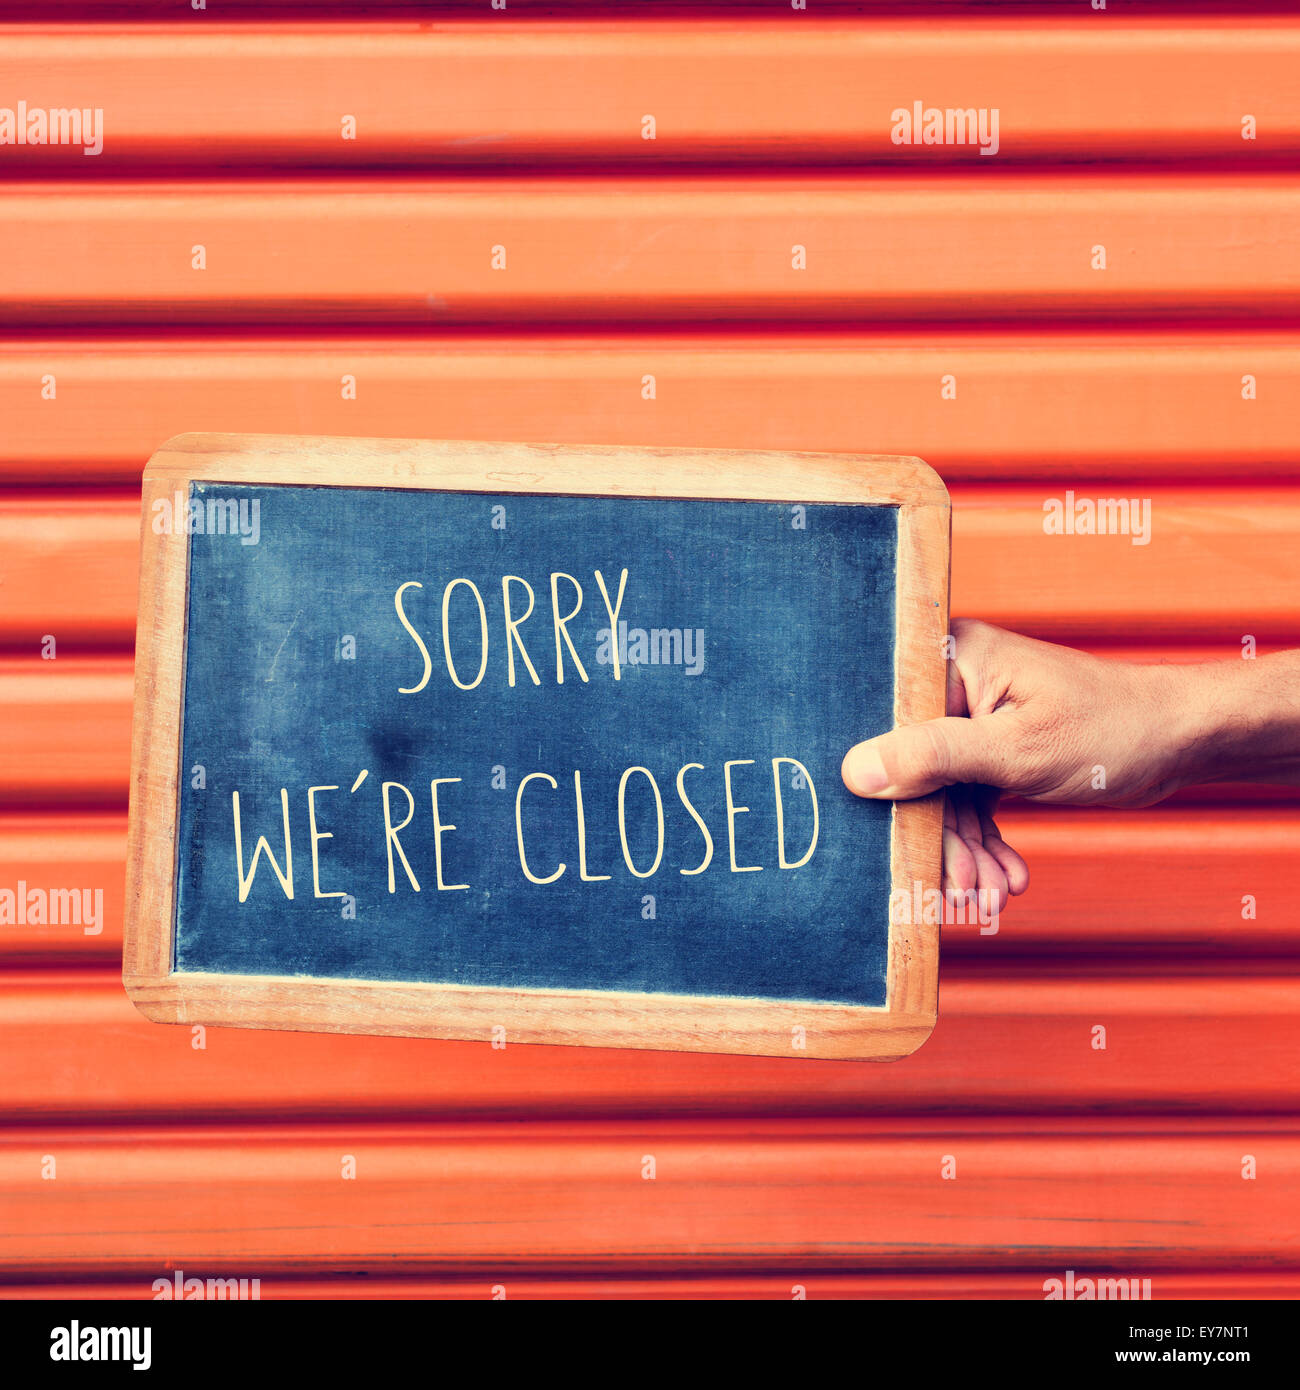 Sorry We're Closed Stock Photos & Sorry We're Closed Stock